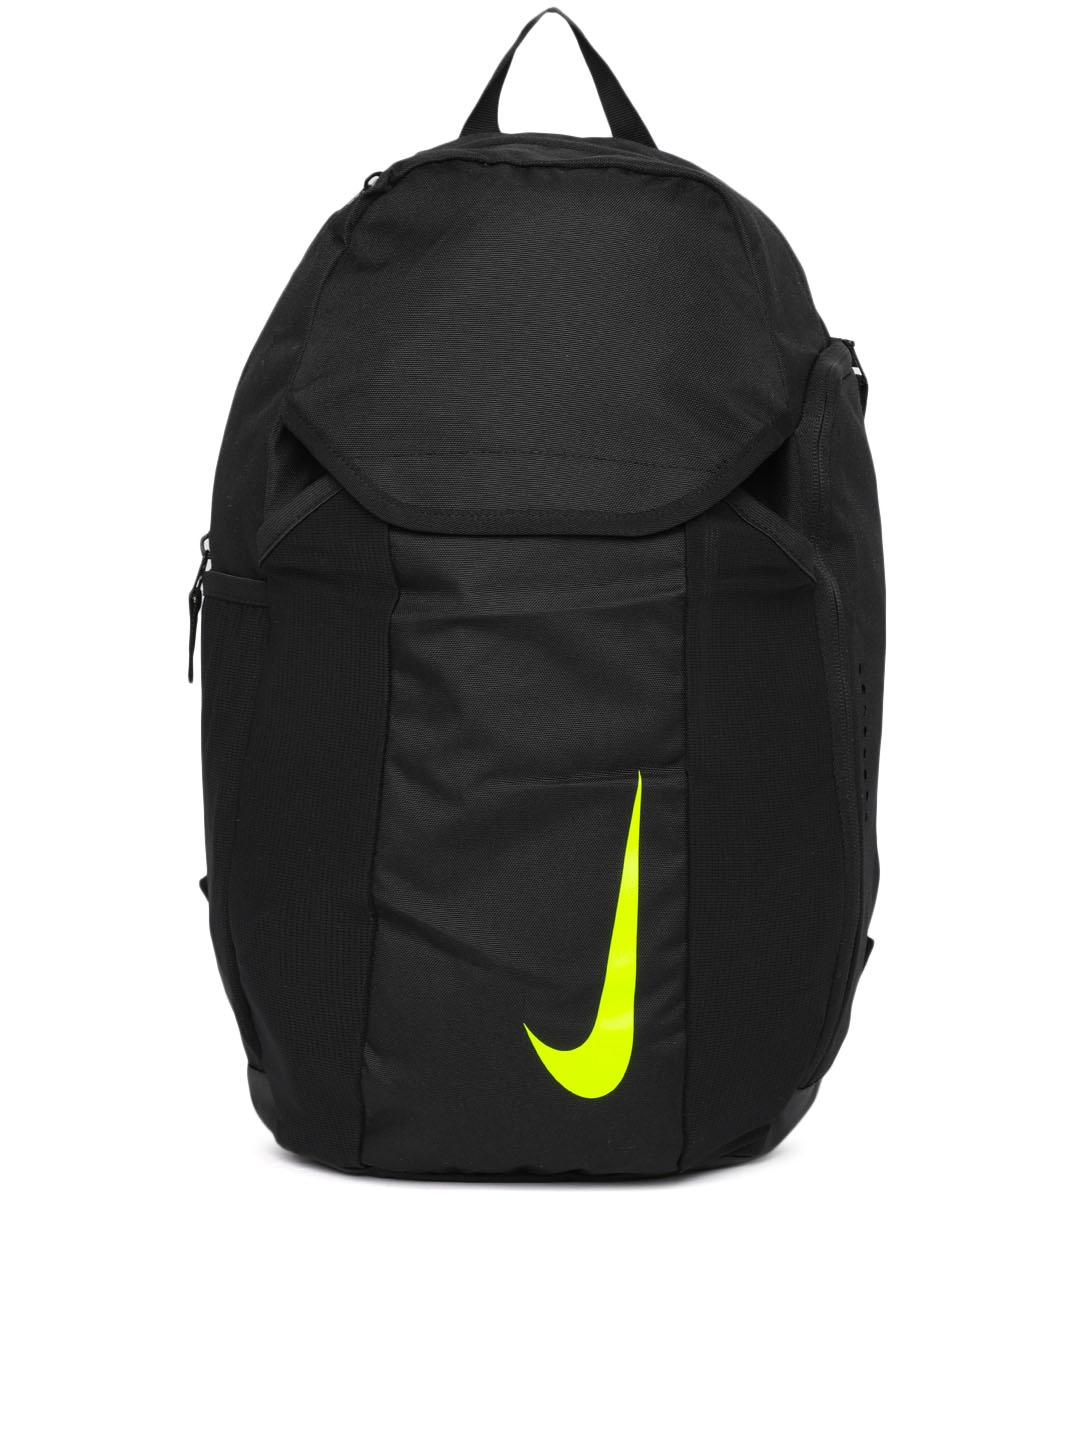 Nike Bags - Buy Nike Bag for Men 93c26f06d